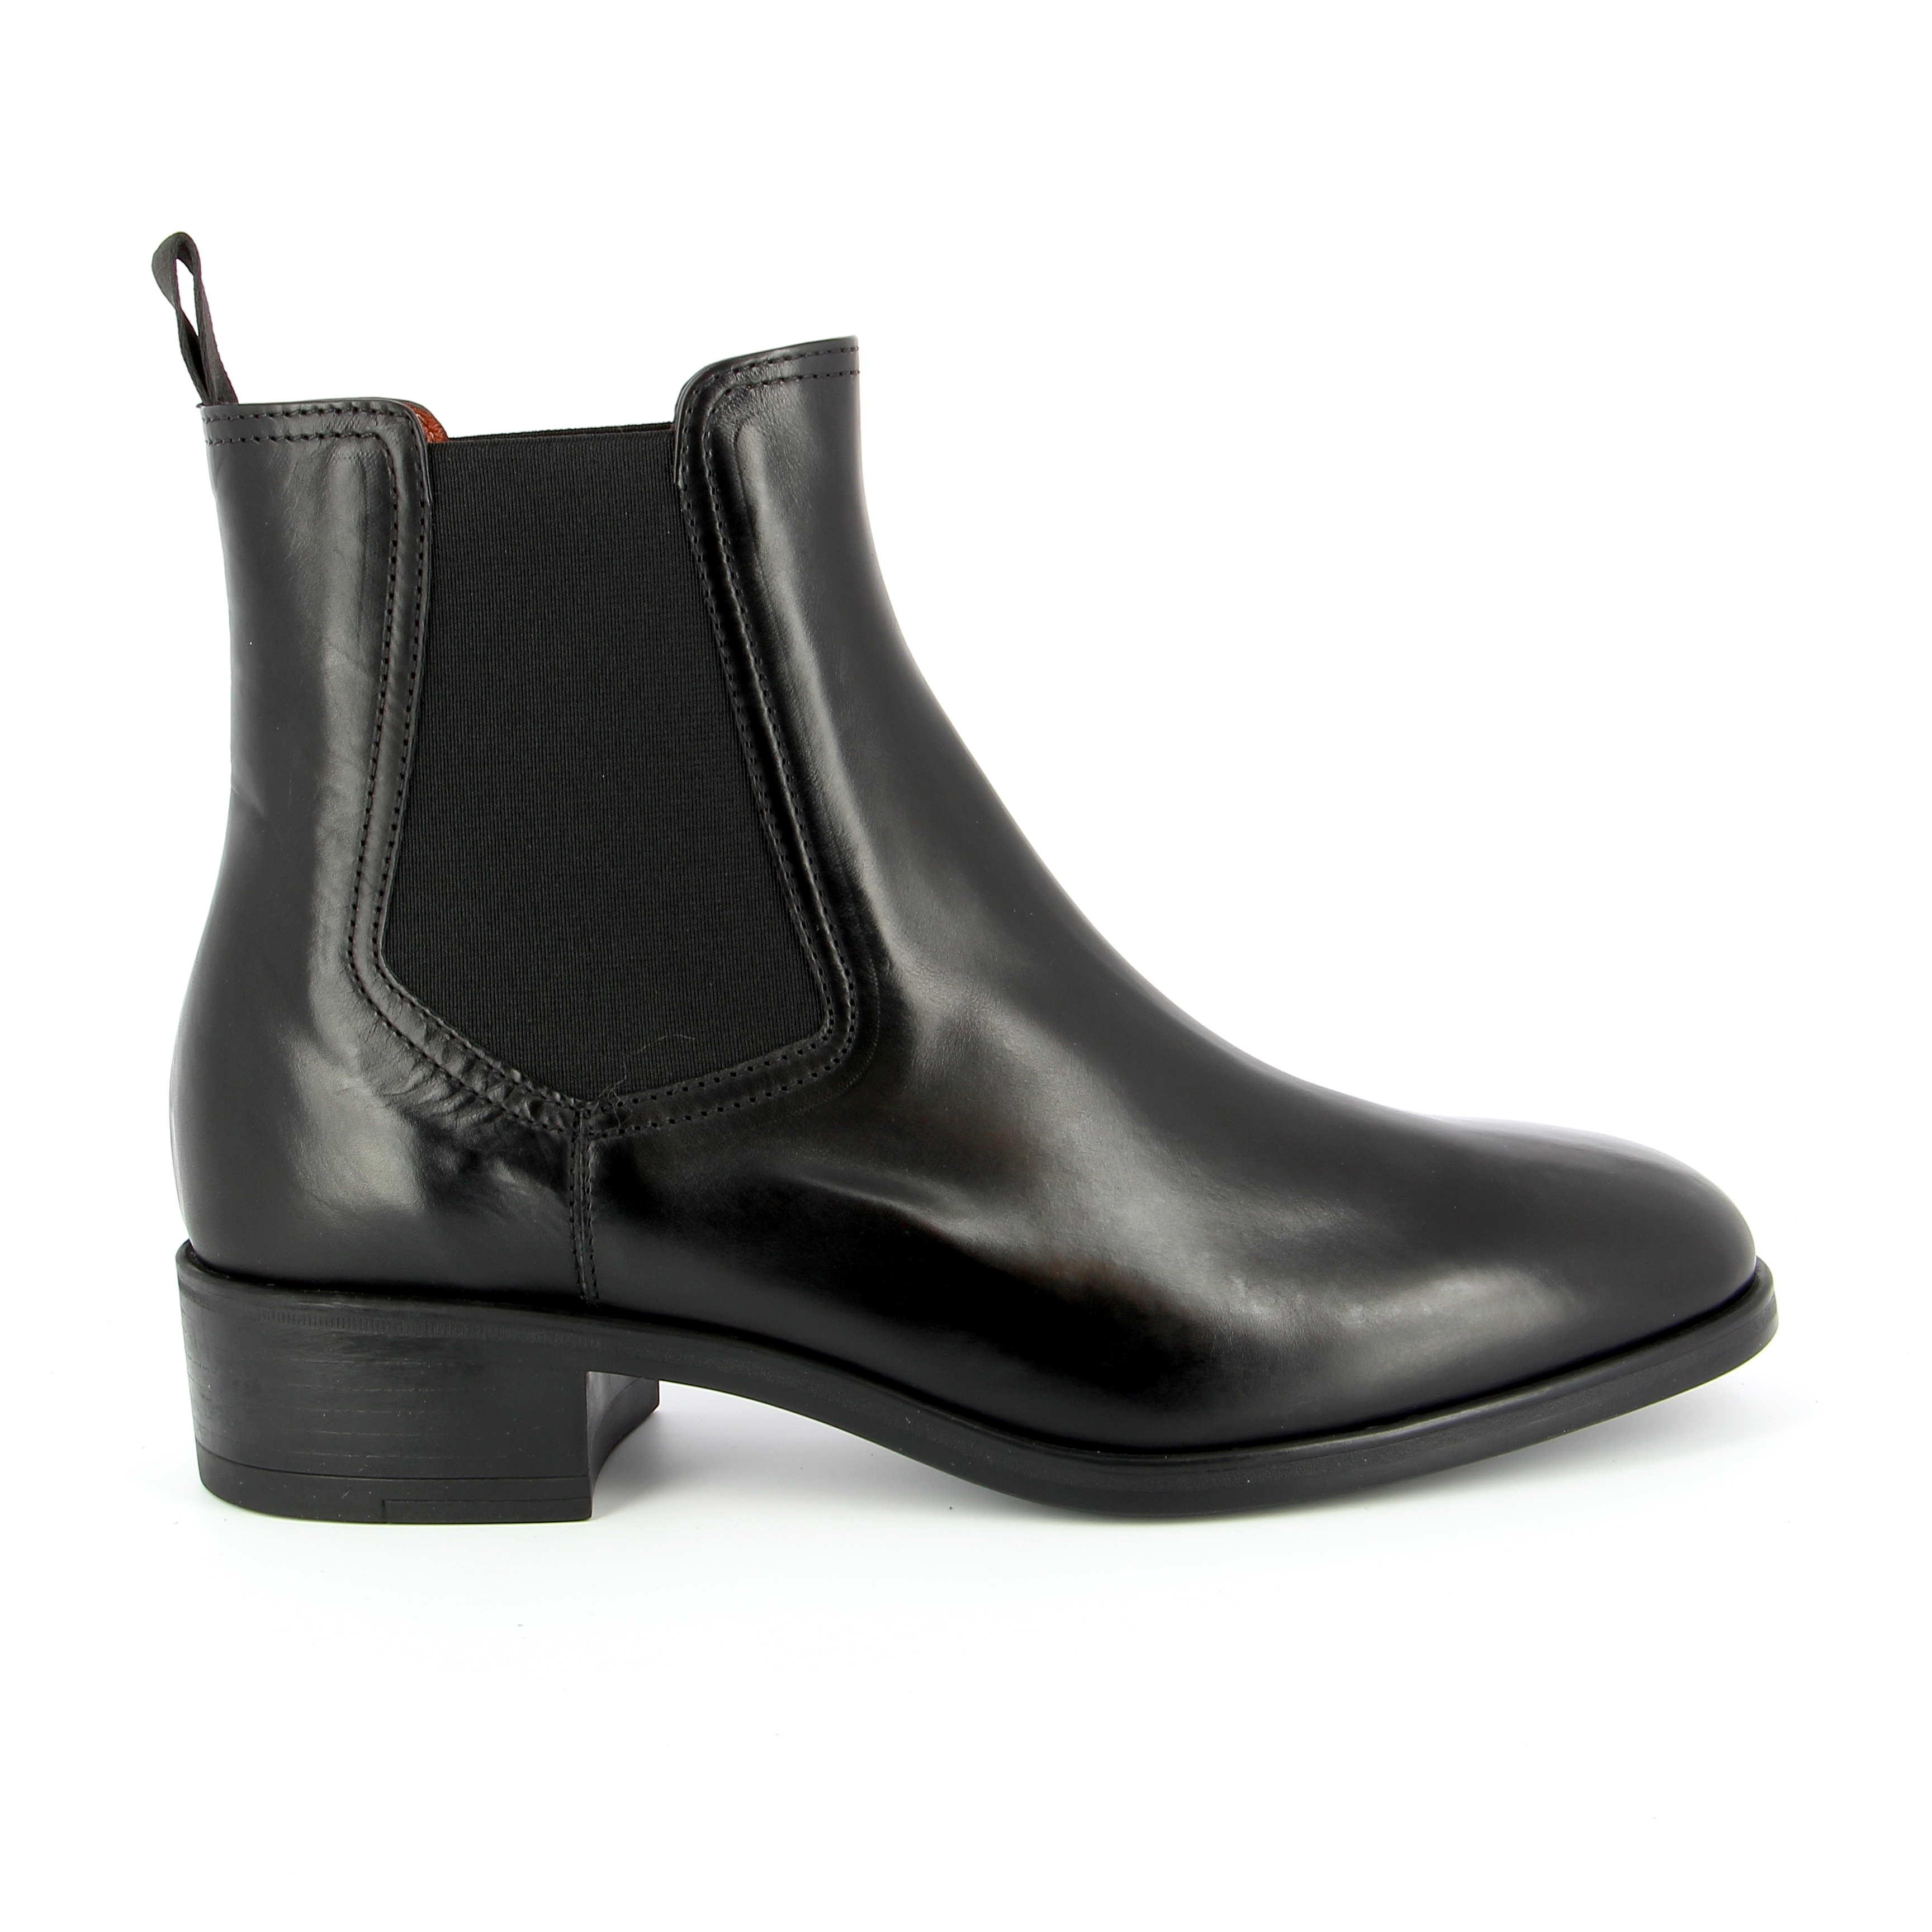 Triver Flight Boots noir